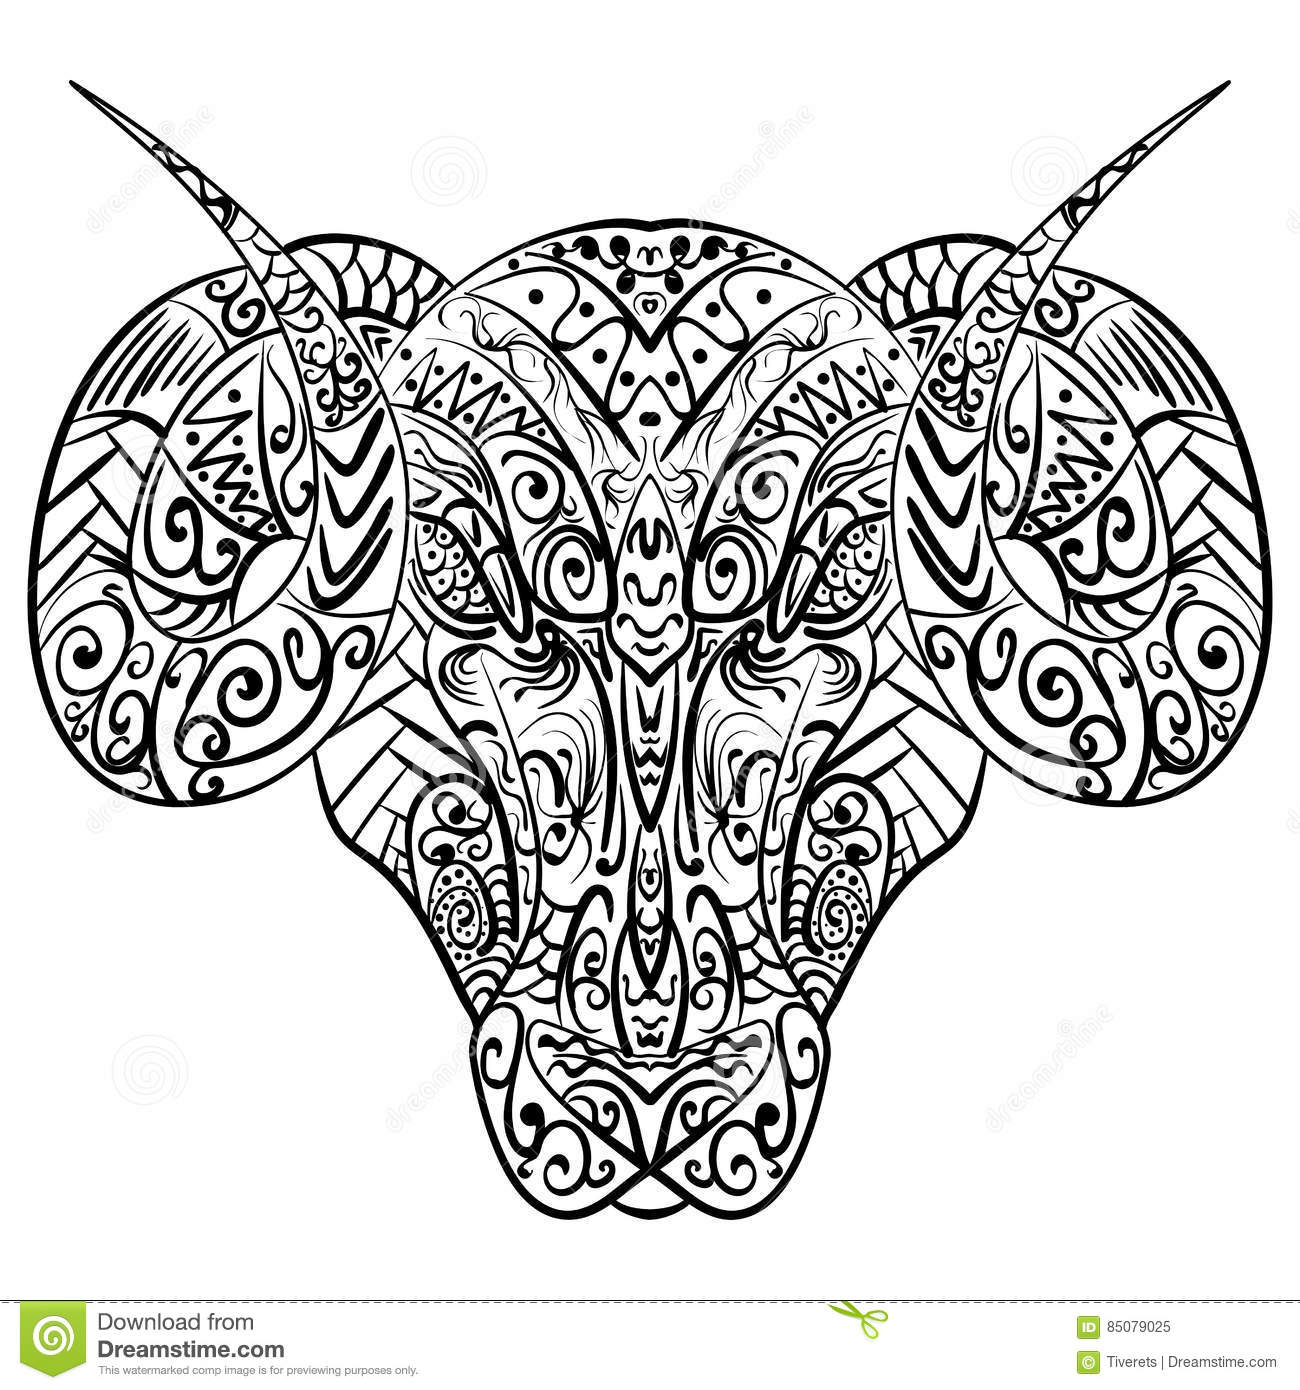 979f6f0ce Zentangle stylized cartoon goat ram head Hand drawn sketch adult antistress  coloring page zentangle vector illustration